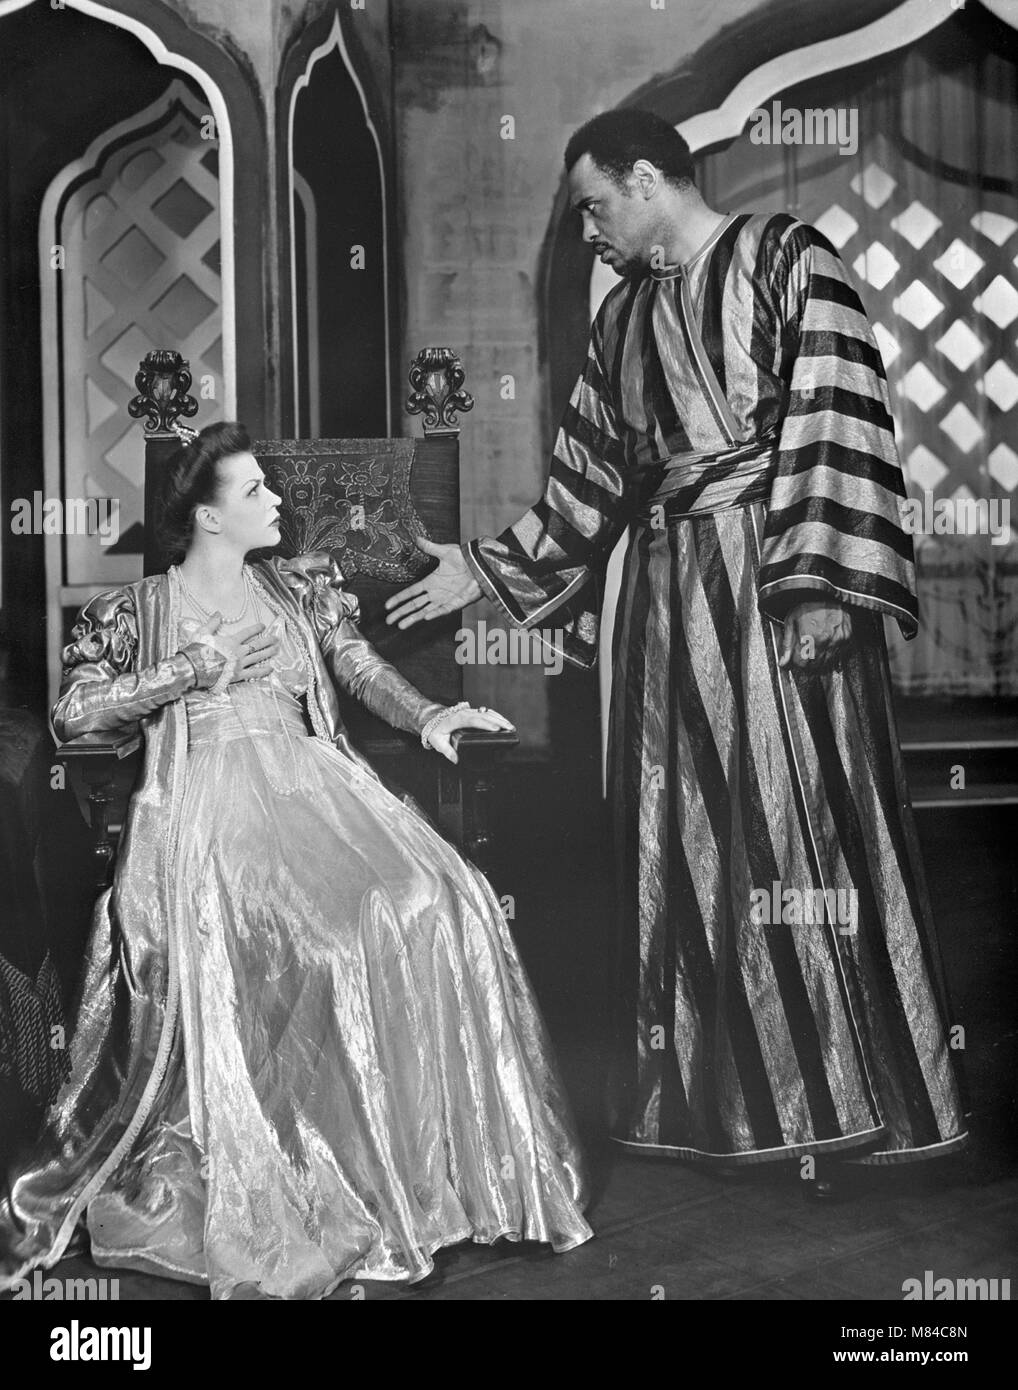 Otello. L'attore e cantante Paul Robeson (1898-1976) come Otello e Uta Hagen come Desdemona in un 1943/4 Broadway Immagini Stock